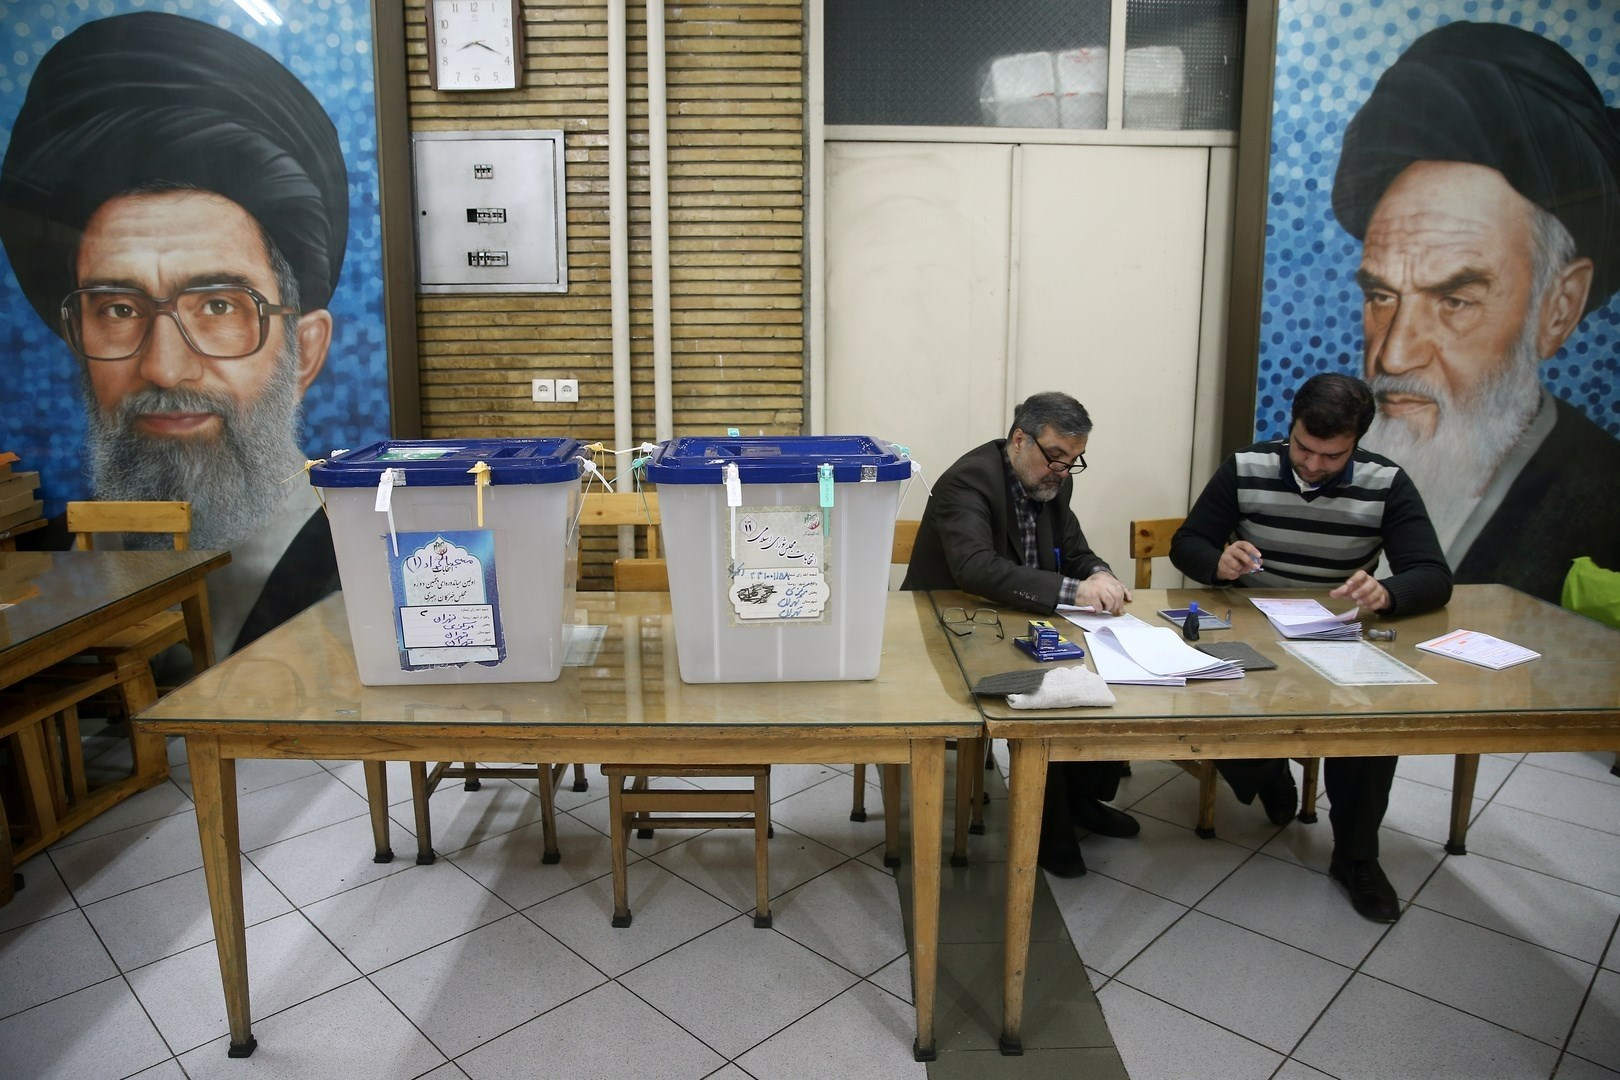 Presidential elections are scheduled to be held in Iran on 18 June 2021